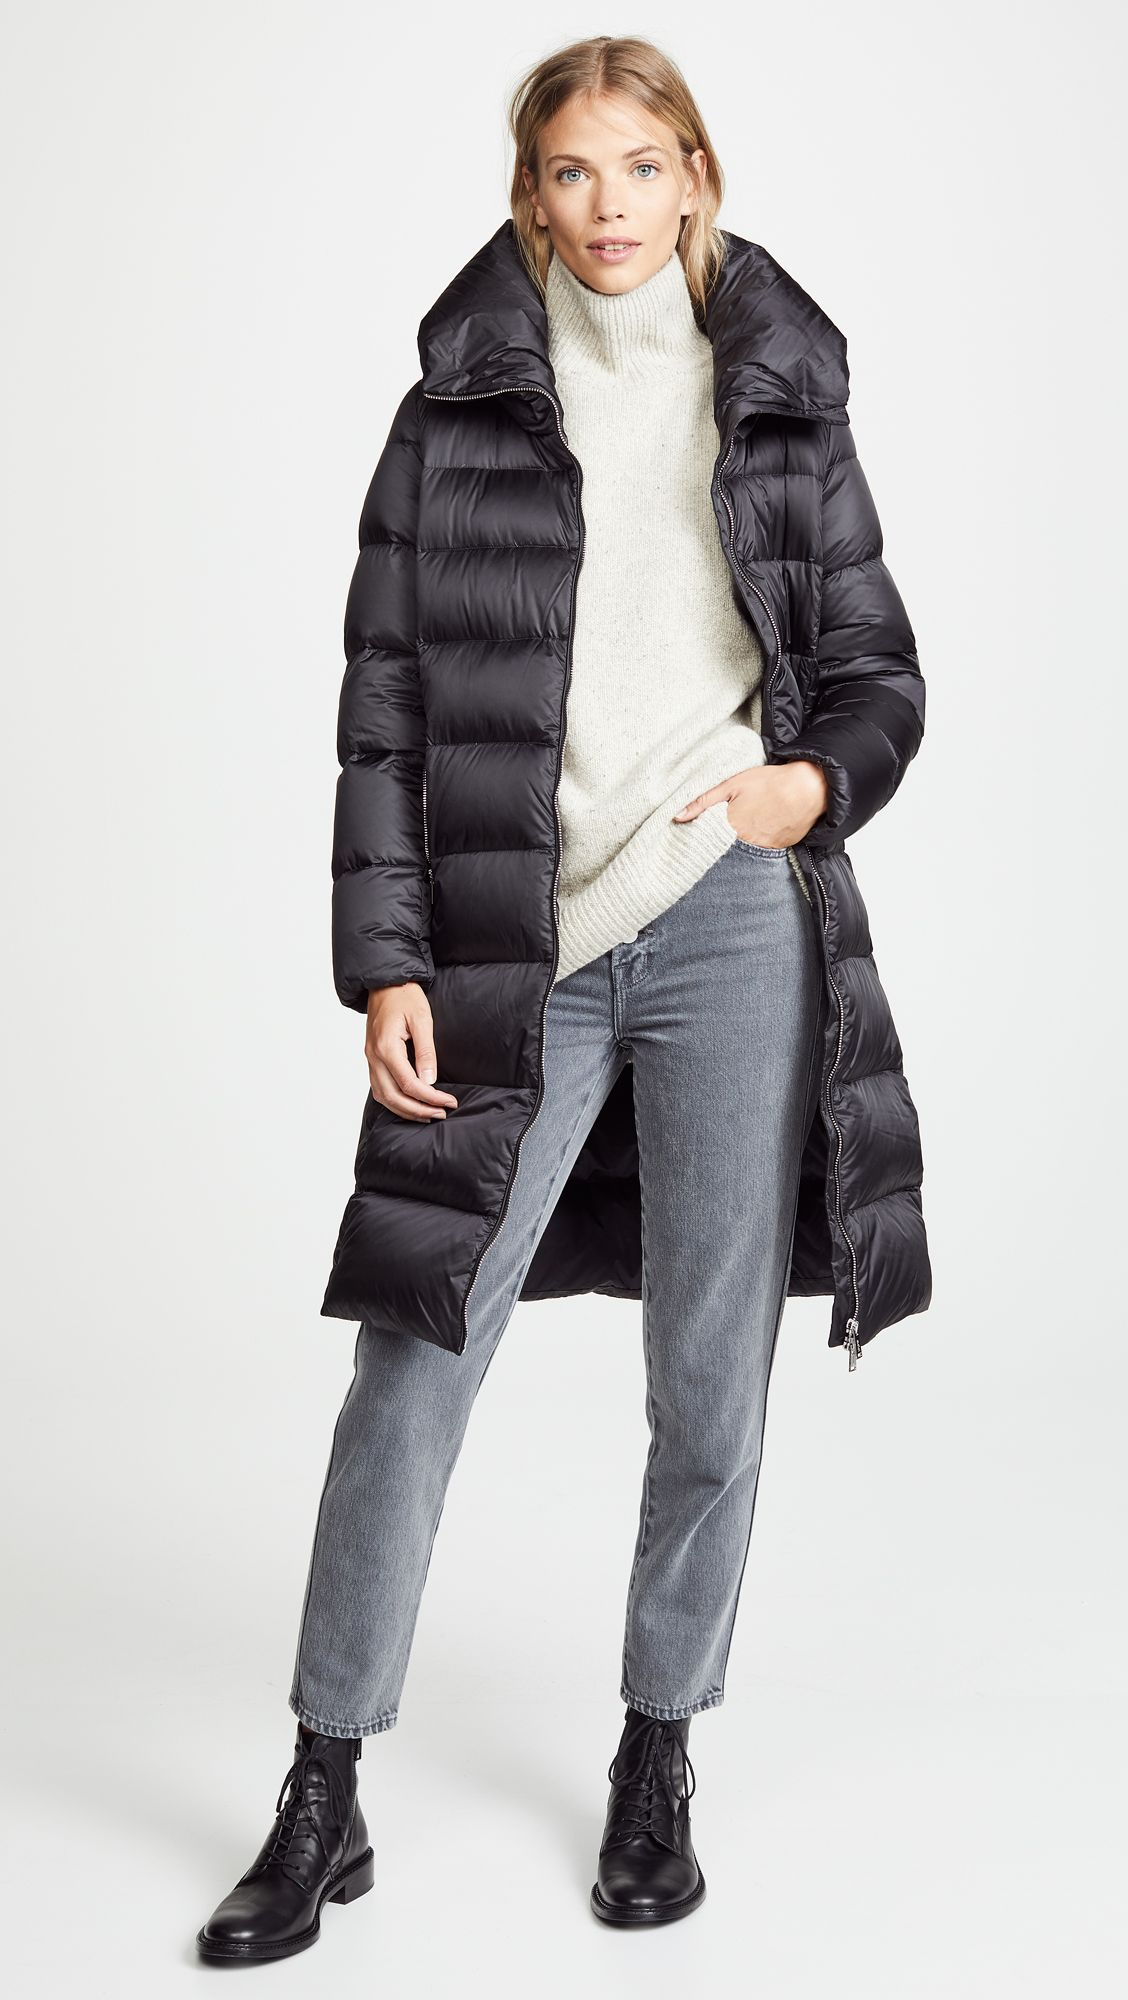 743ced7fa48 Long Down Coat in 2019 | The 5 Biggest Down & Puffer Trends | Long ...